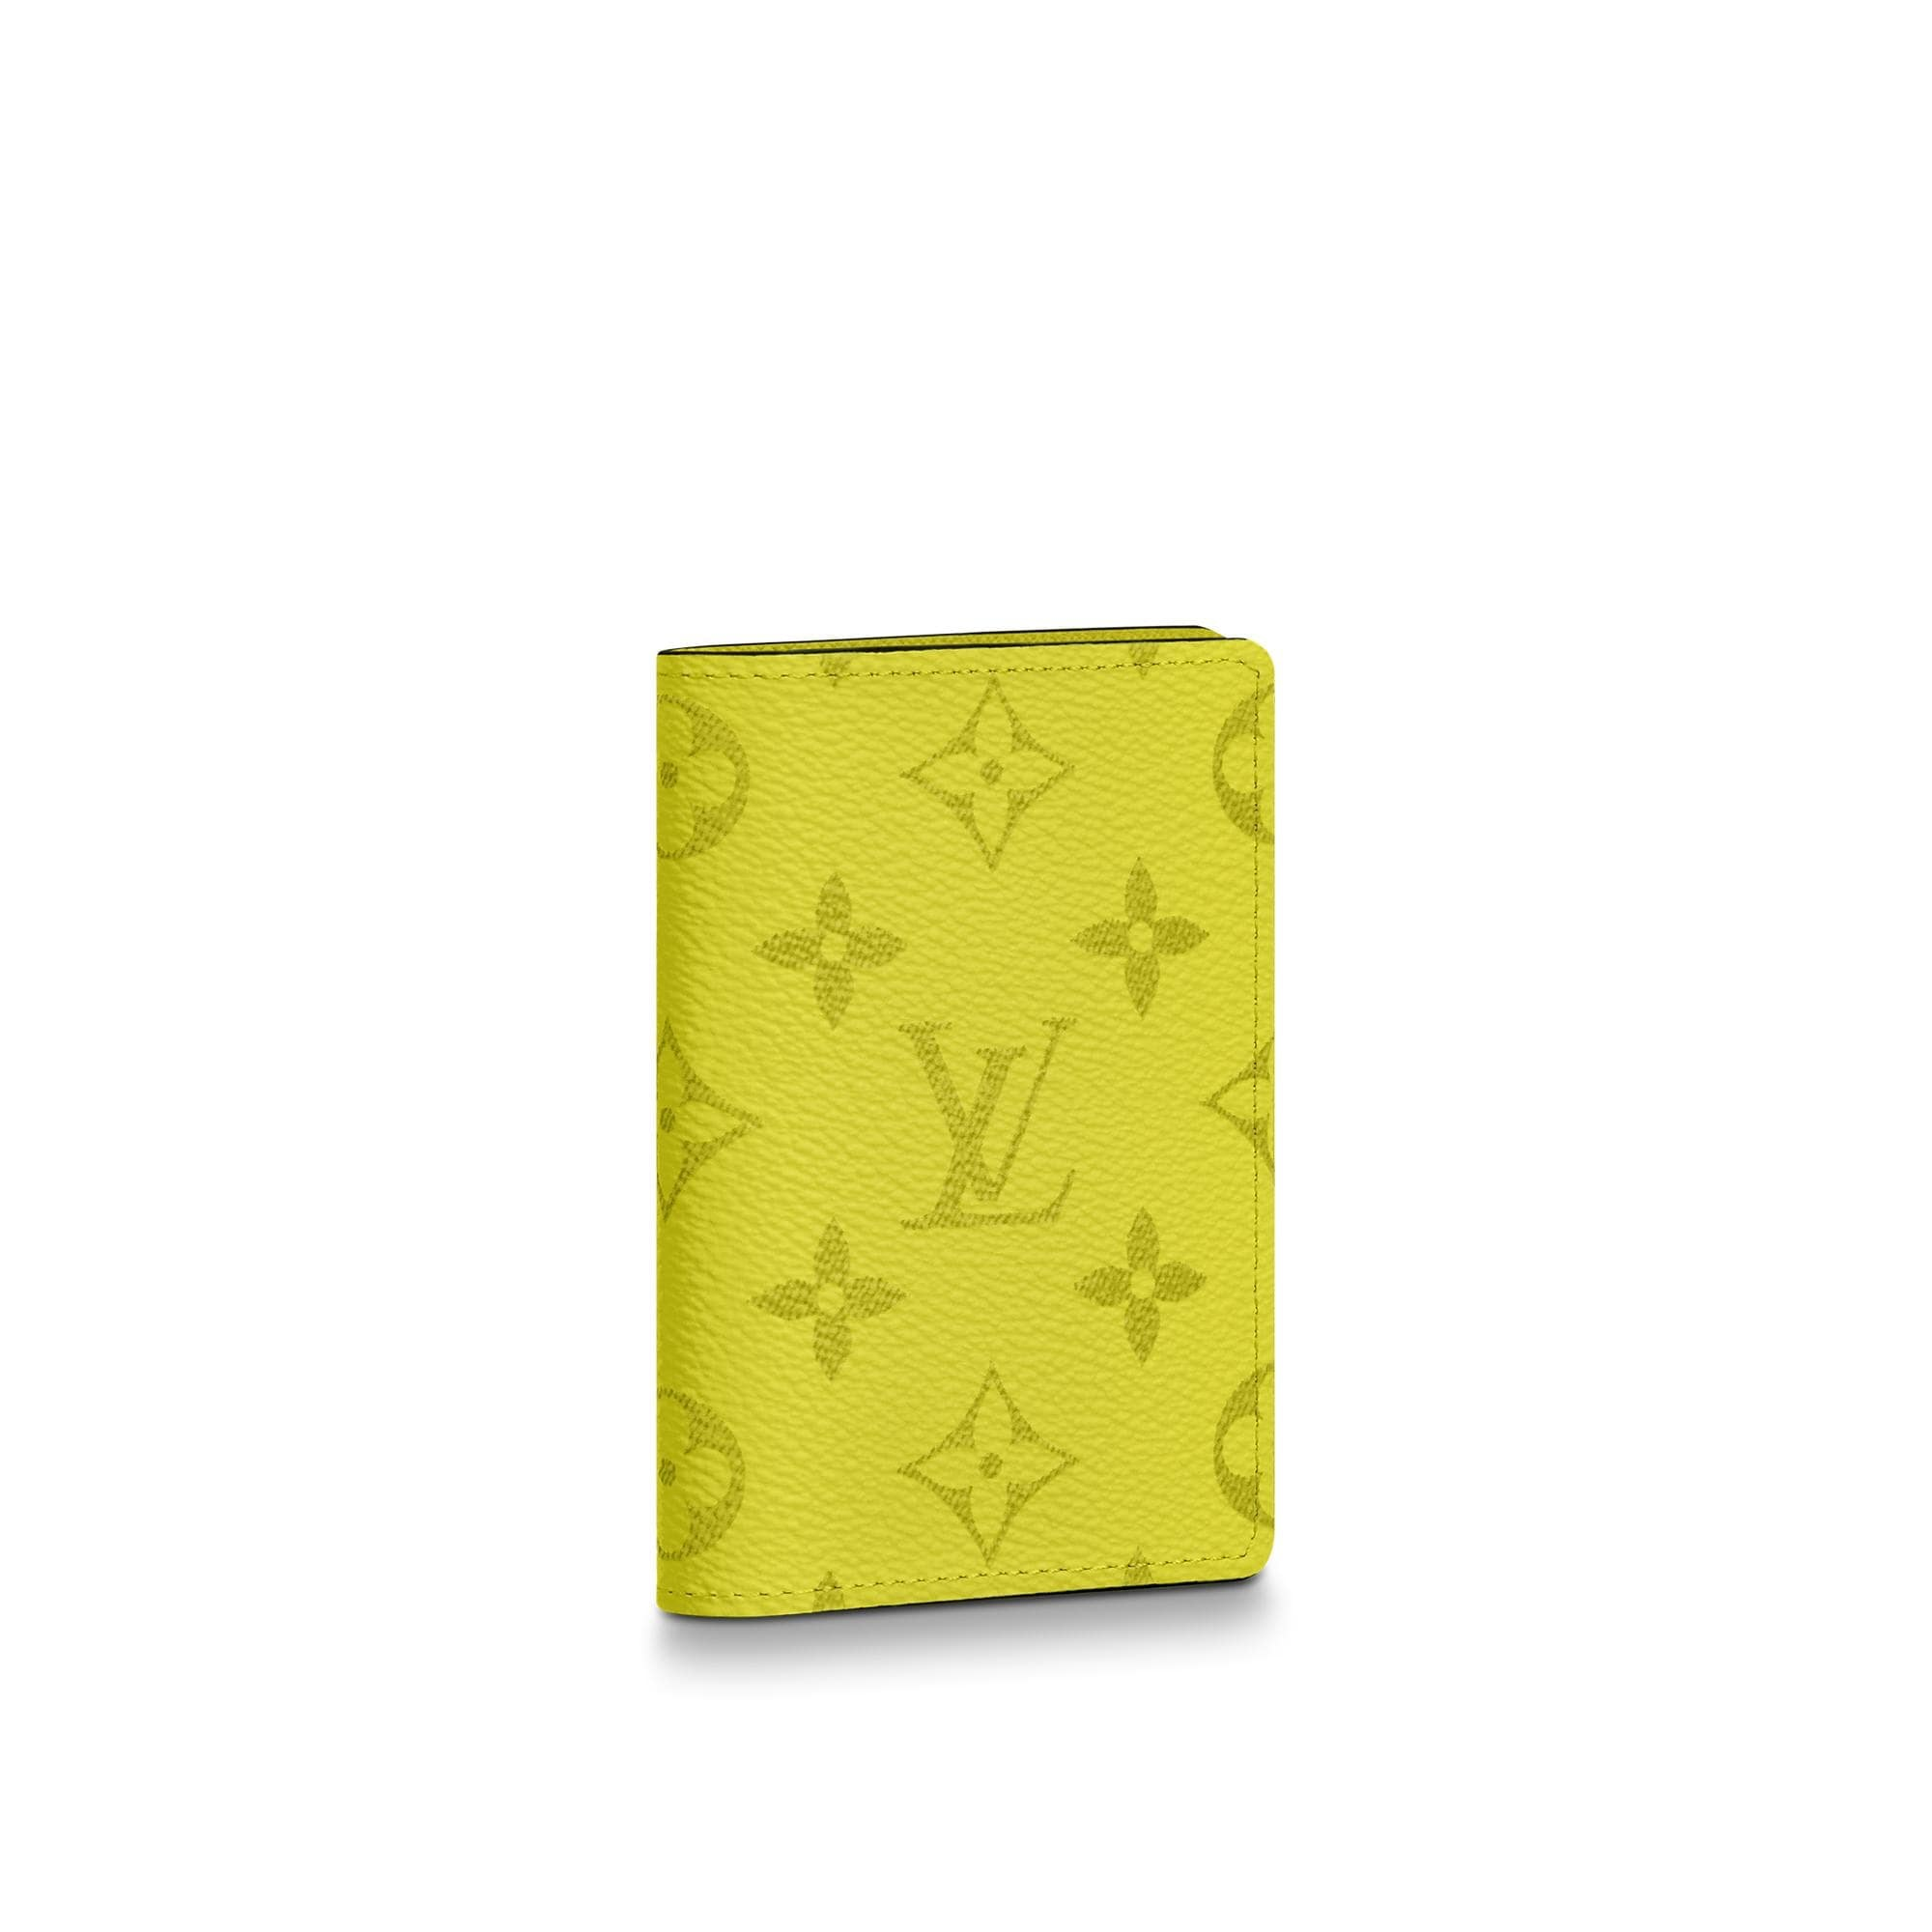 Louis Vuitton Pocket Organizer Monogram Bahia Yellow